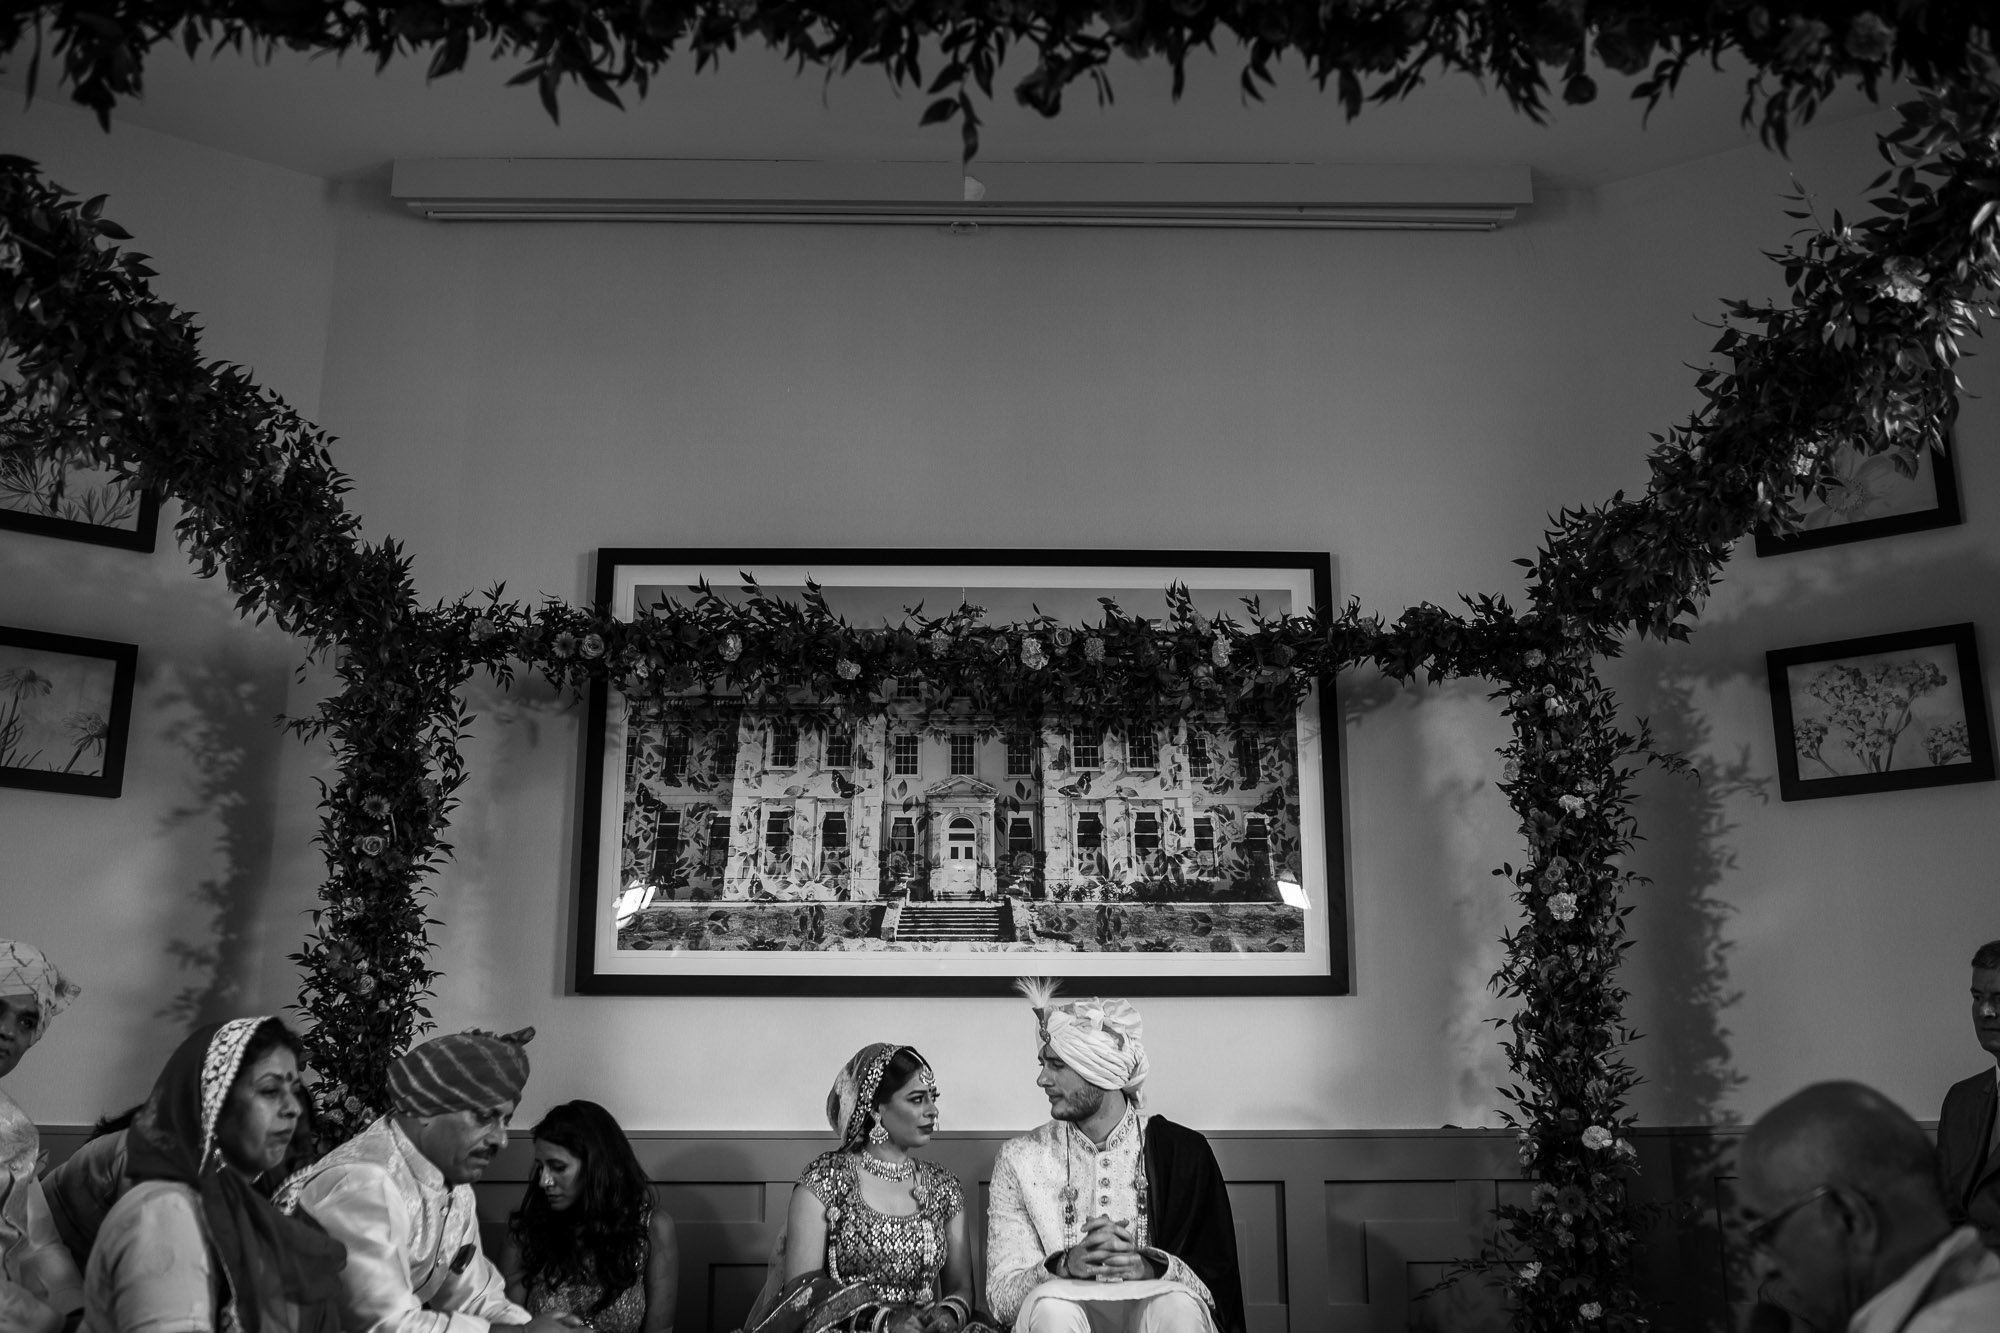 De Vere Wokefield Estate, Asian wedding photographer, hindu ceremony, bride and groom